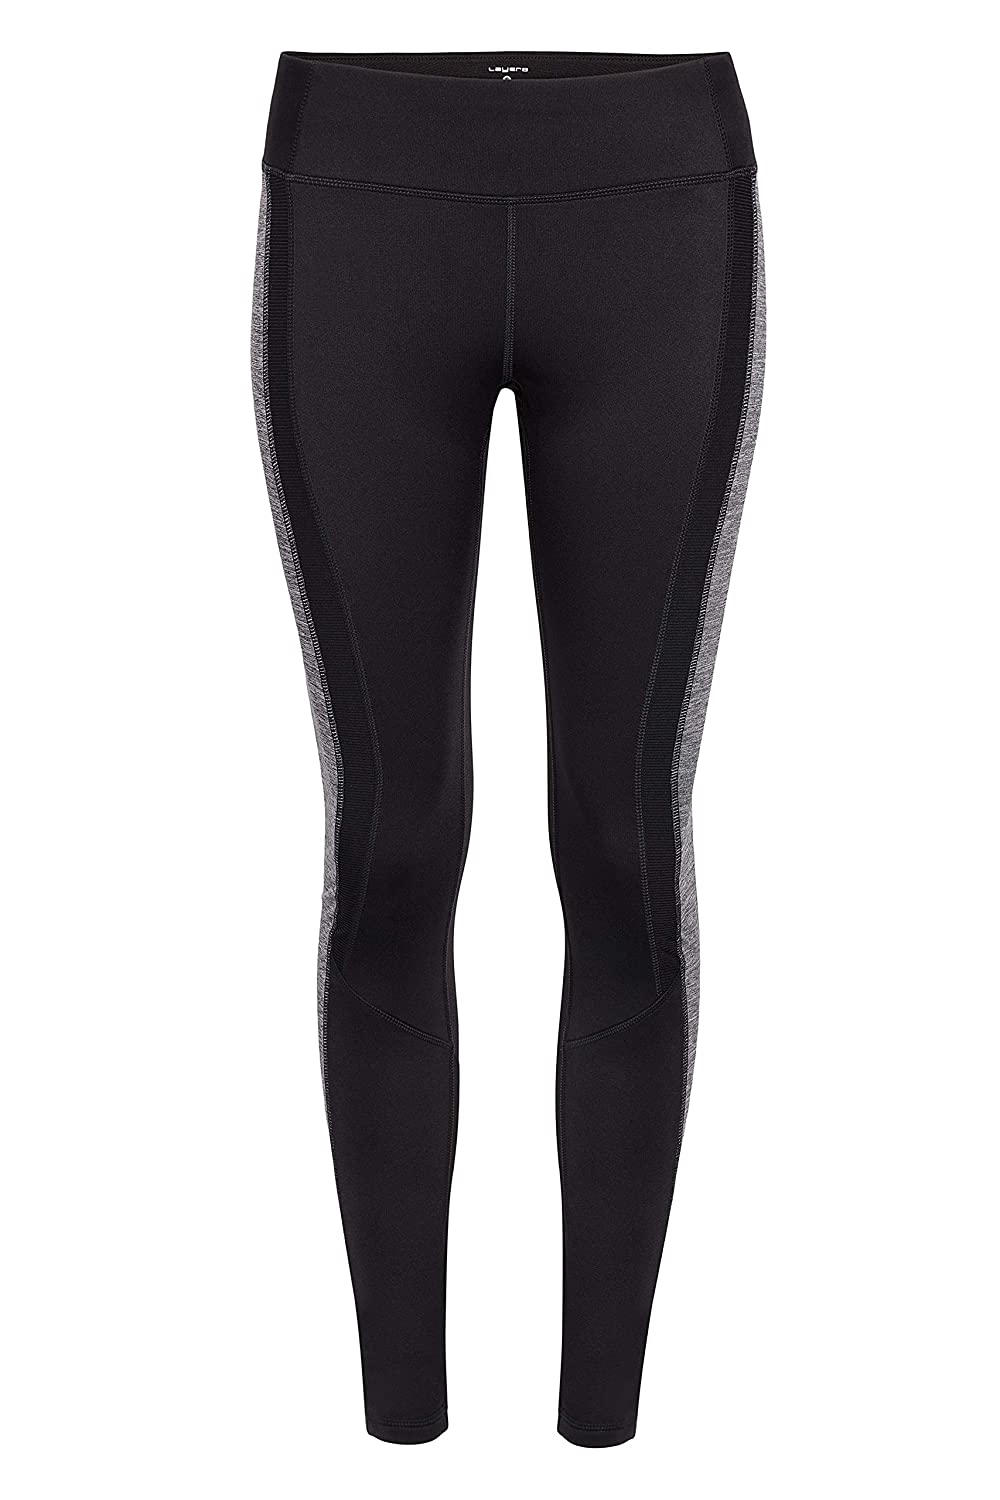 93b7ca84ba Amazon.com: Layer 8 Women's Athletic Performance Workout Running and Yoga  Legging Pants with High Waist Tummy Control: Clothing